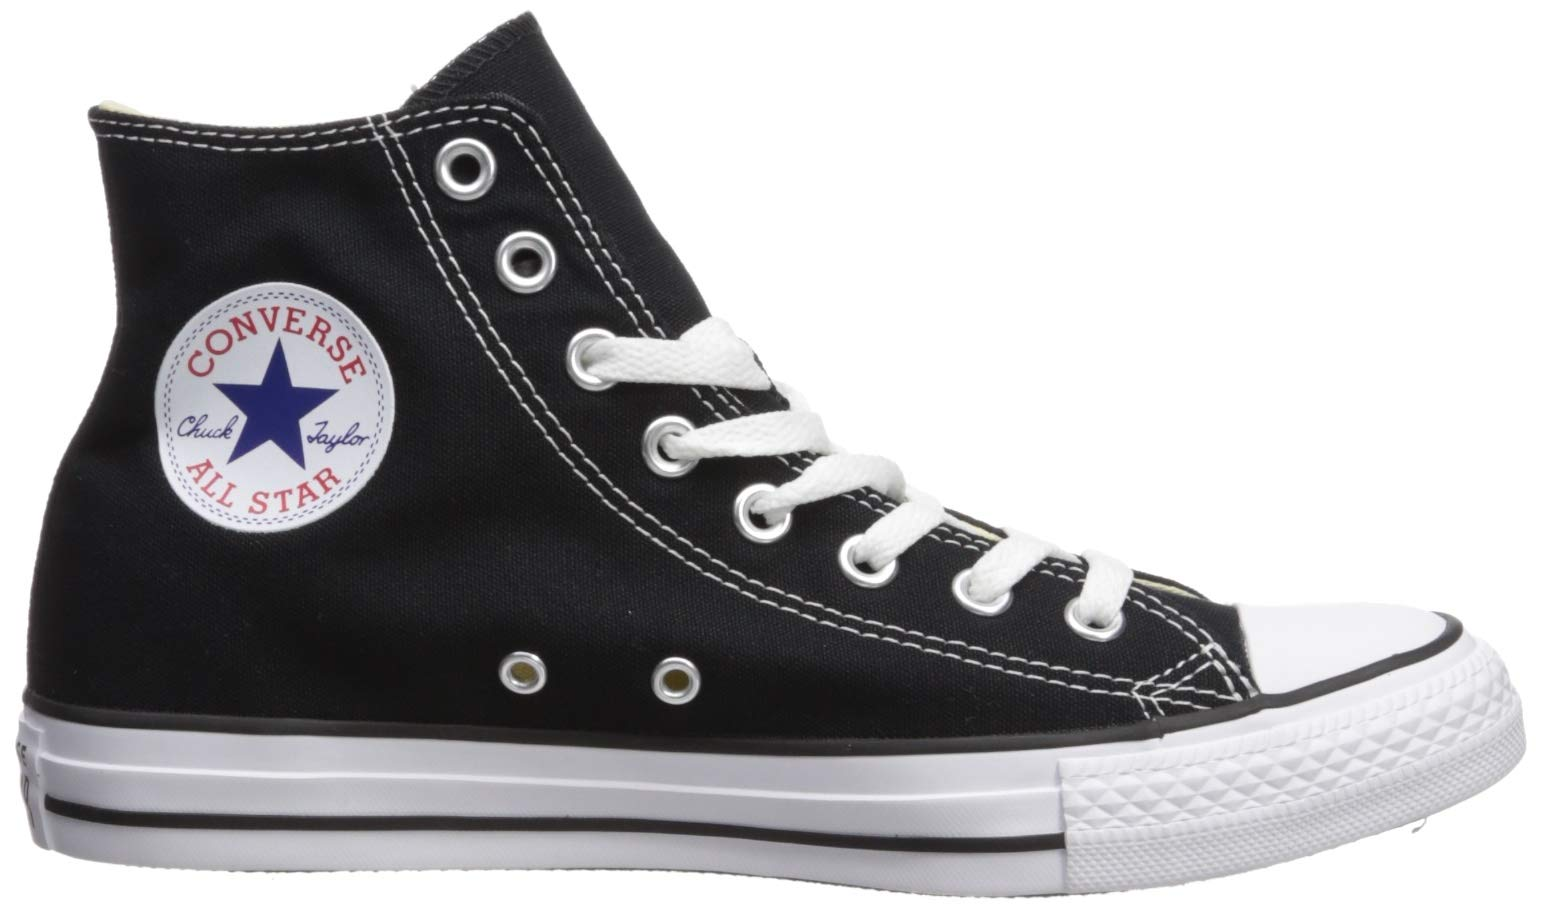 Chuck Taylor All Star Canvas High Top, Black, 4 M US by Converse (Image #12)